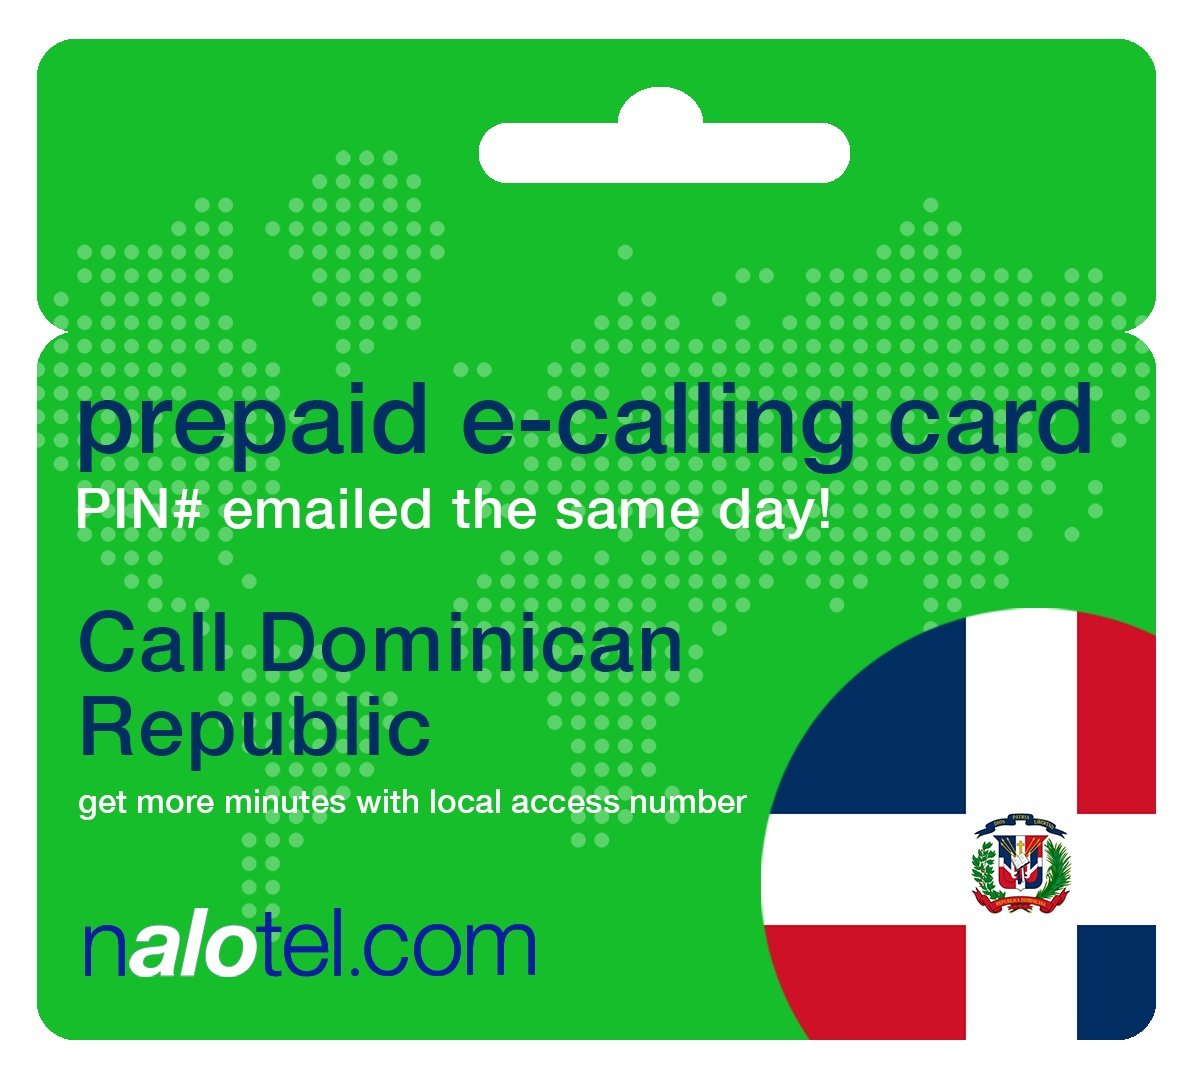 Prepaid Phone Card - Cheap International E-Calling Card $10 for Dominican Republic with same day emailed PIN, no postage necessary